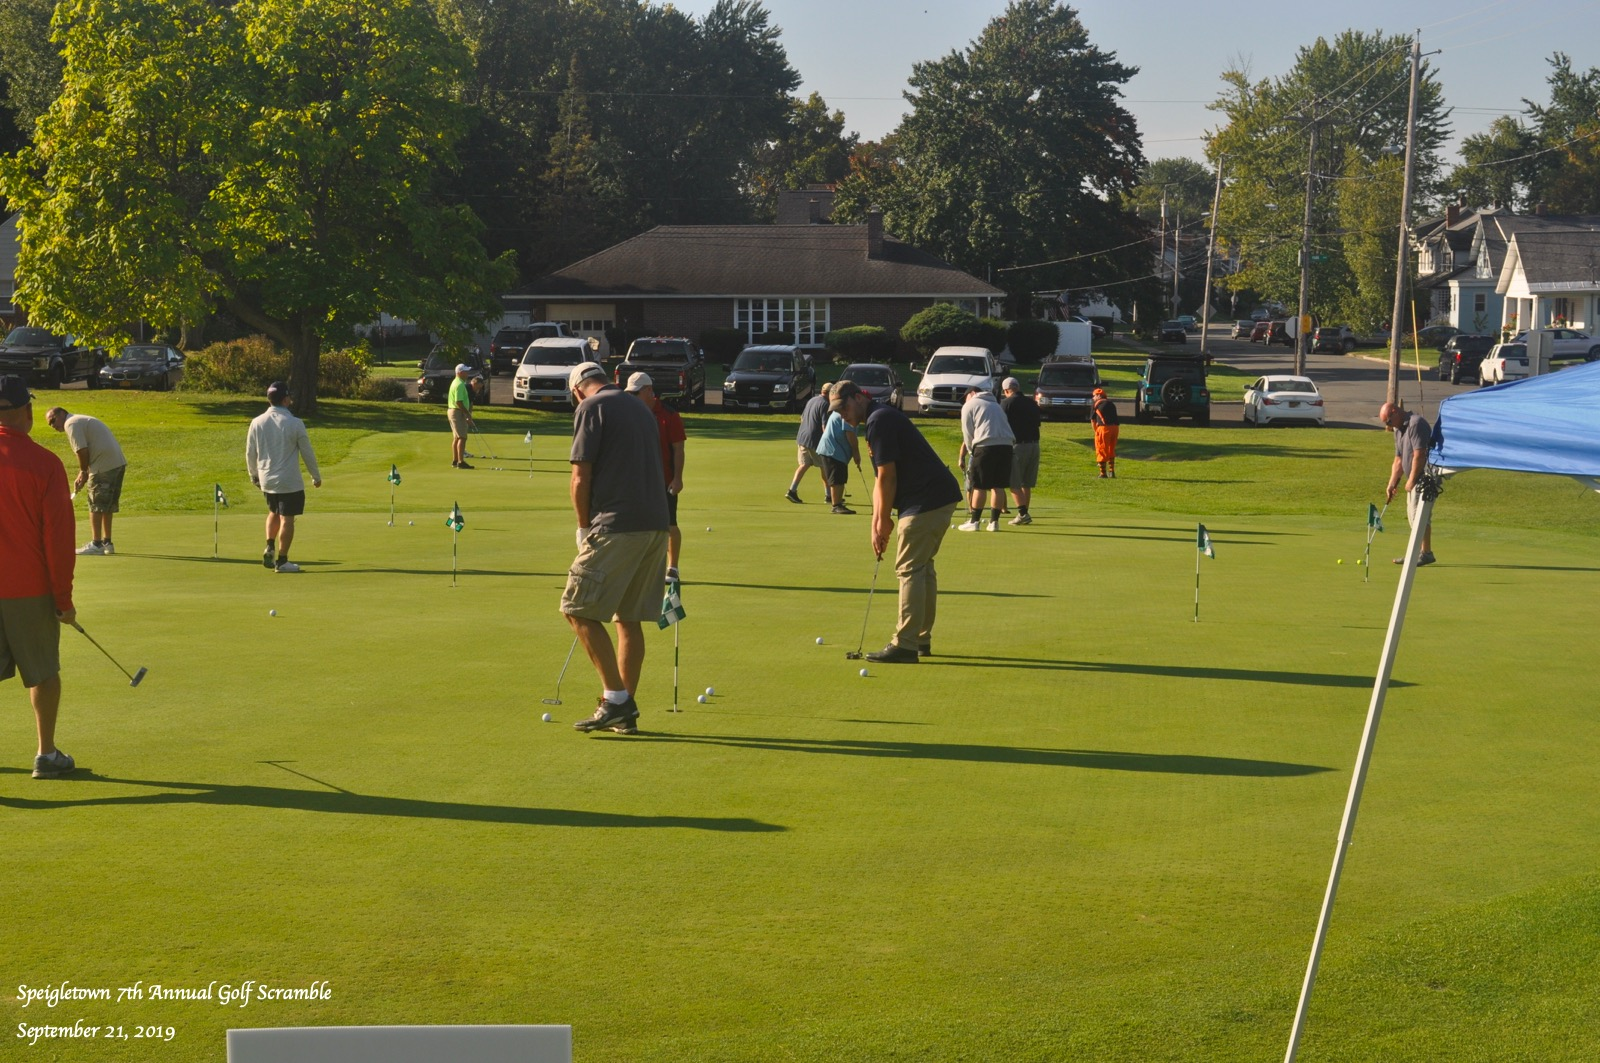 Speigletown Golf Scramble 2019_9